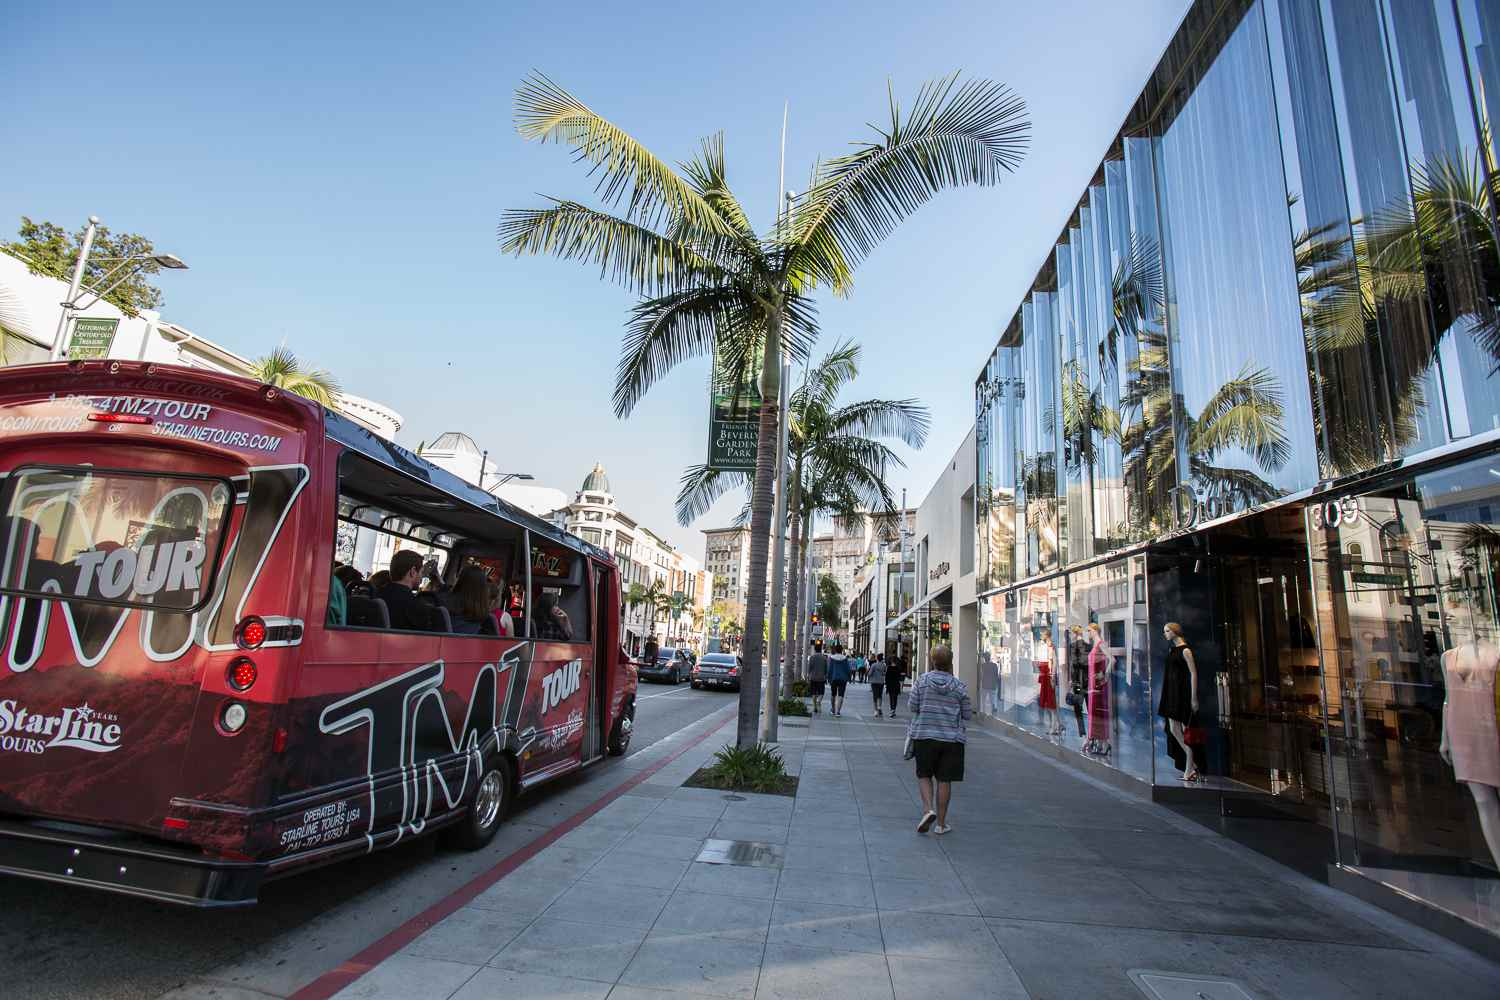 Starline TMZ Tour on Rodeo Drive in Beverly Hills